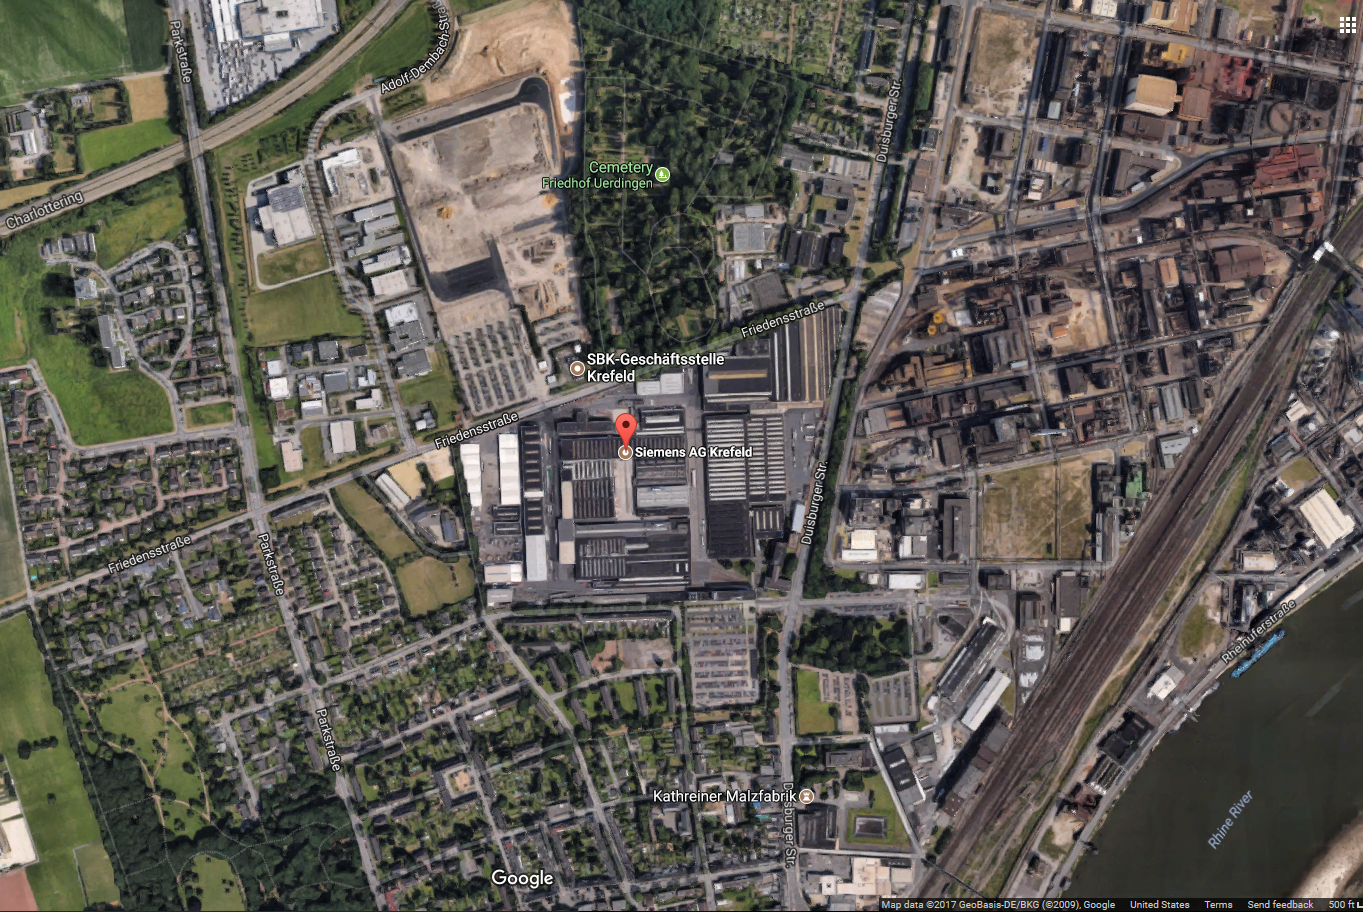 And The Siemens Plant In Krefeld In Densely Populated Westphalia Is A Half Hour By Commuter Rail And Bus From The Main Krefeld Train Station With Frequent